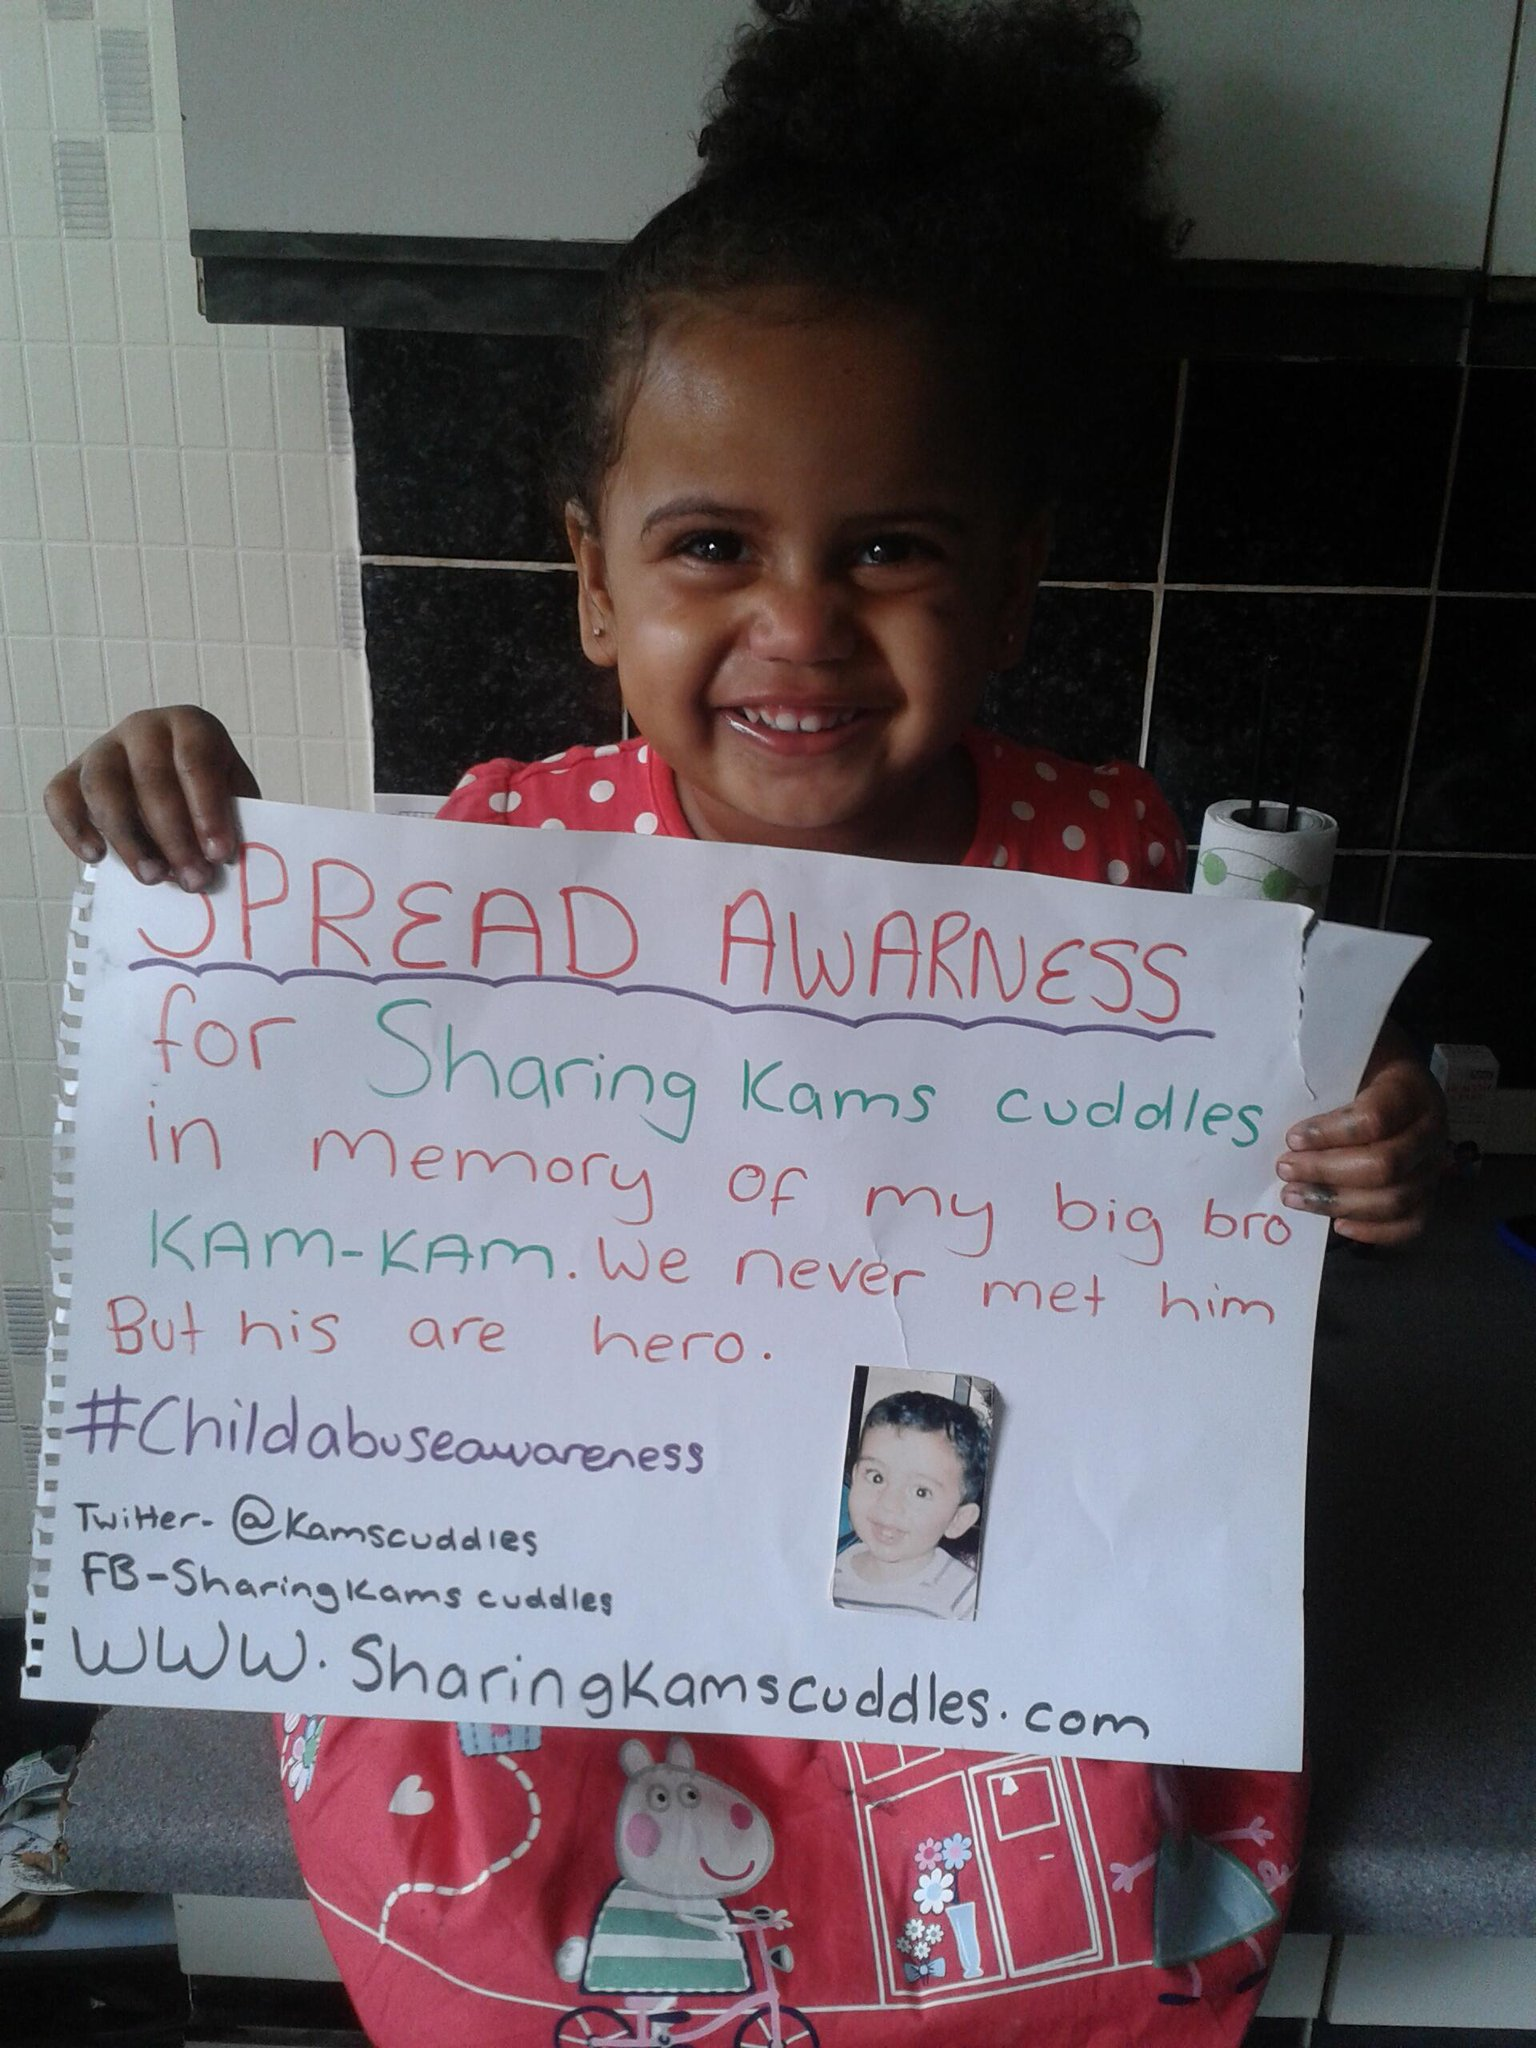 RT @Kamscuddles: @NolanColeen @MrPeterAndre @manny_smith6 @CraigGards8 @Iamzulubaz  Can u all RT help us raise awareness 4child abuse http:…